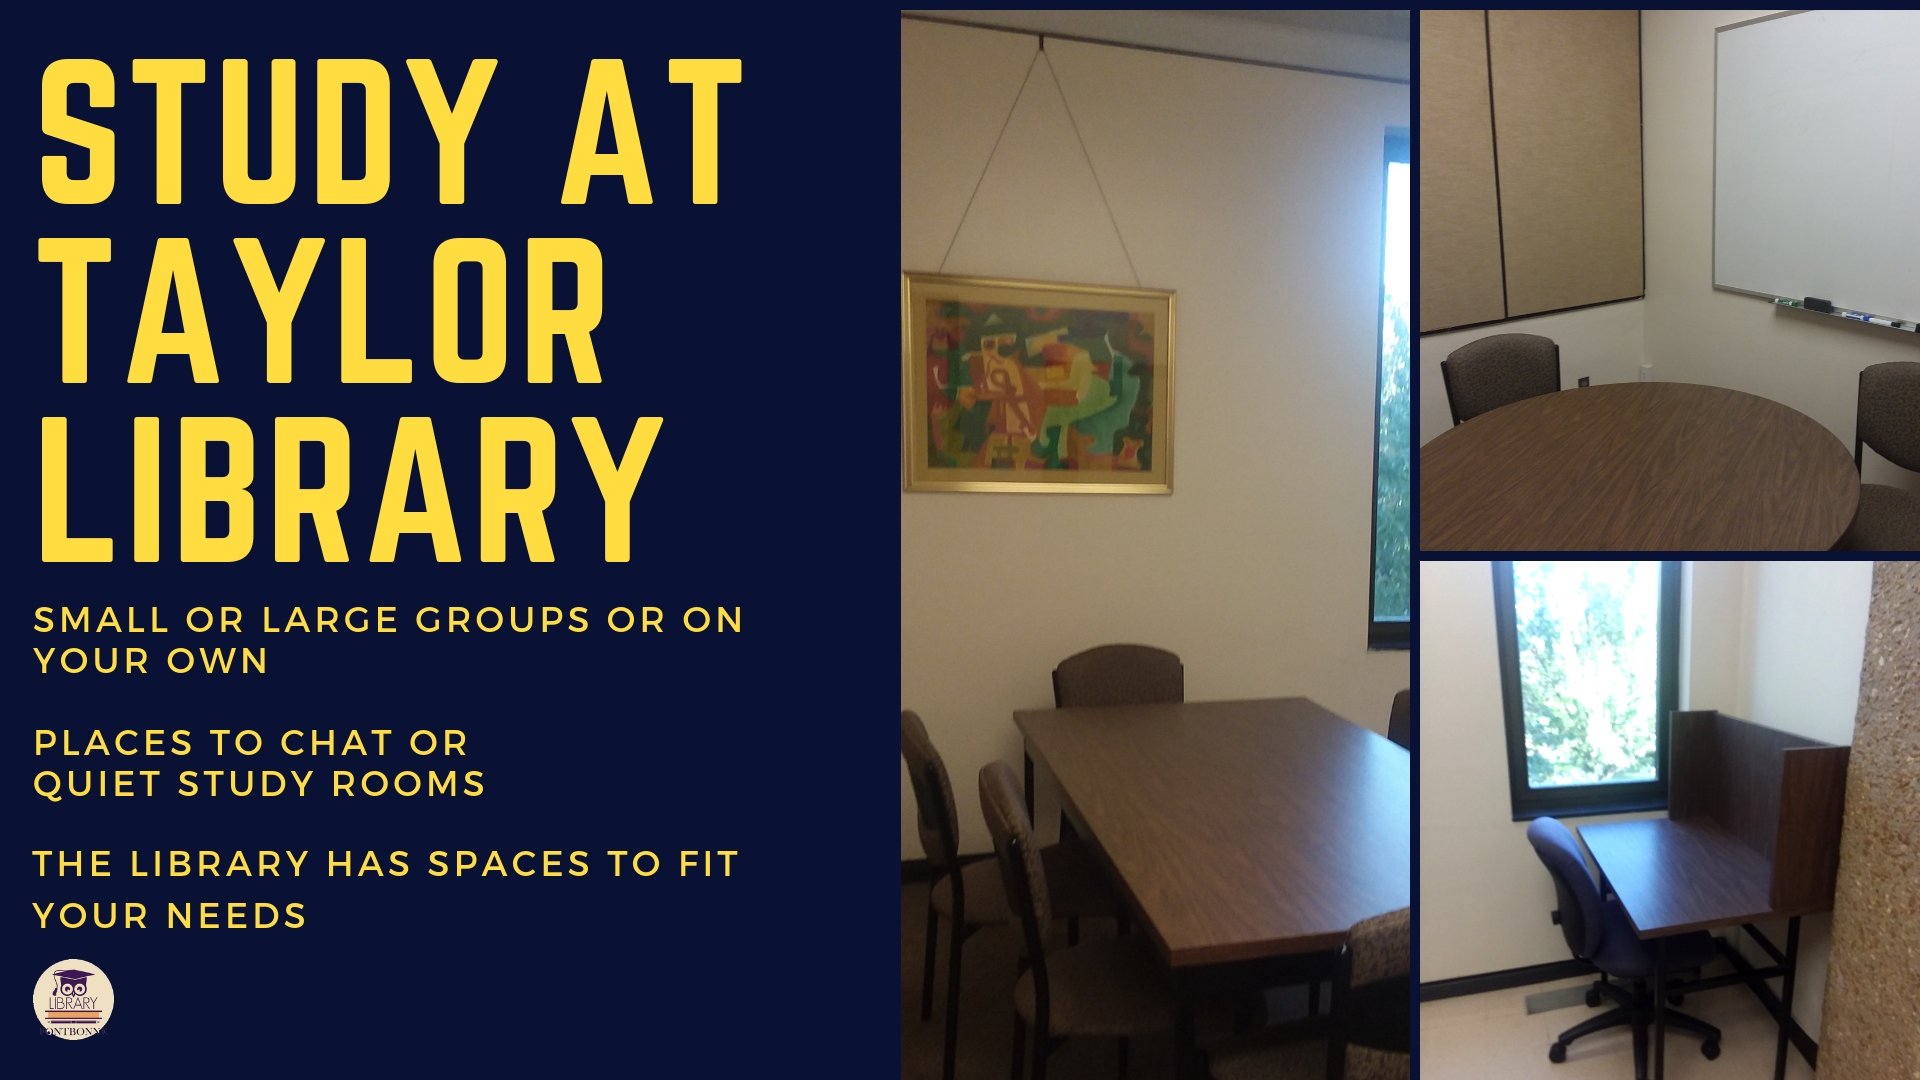 The library has a variety of study areas to fit your needs